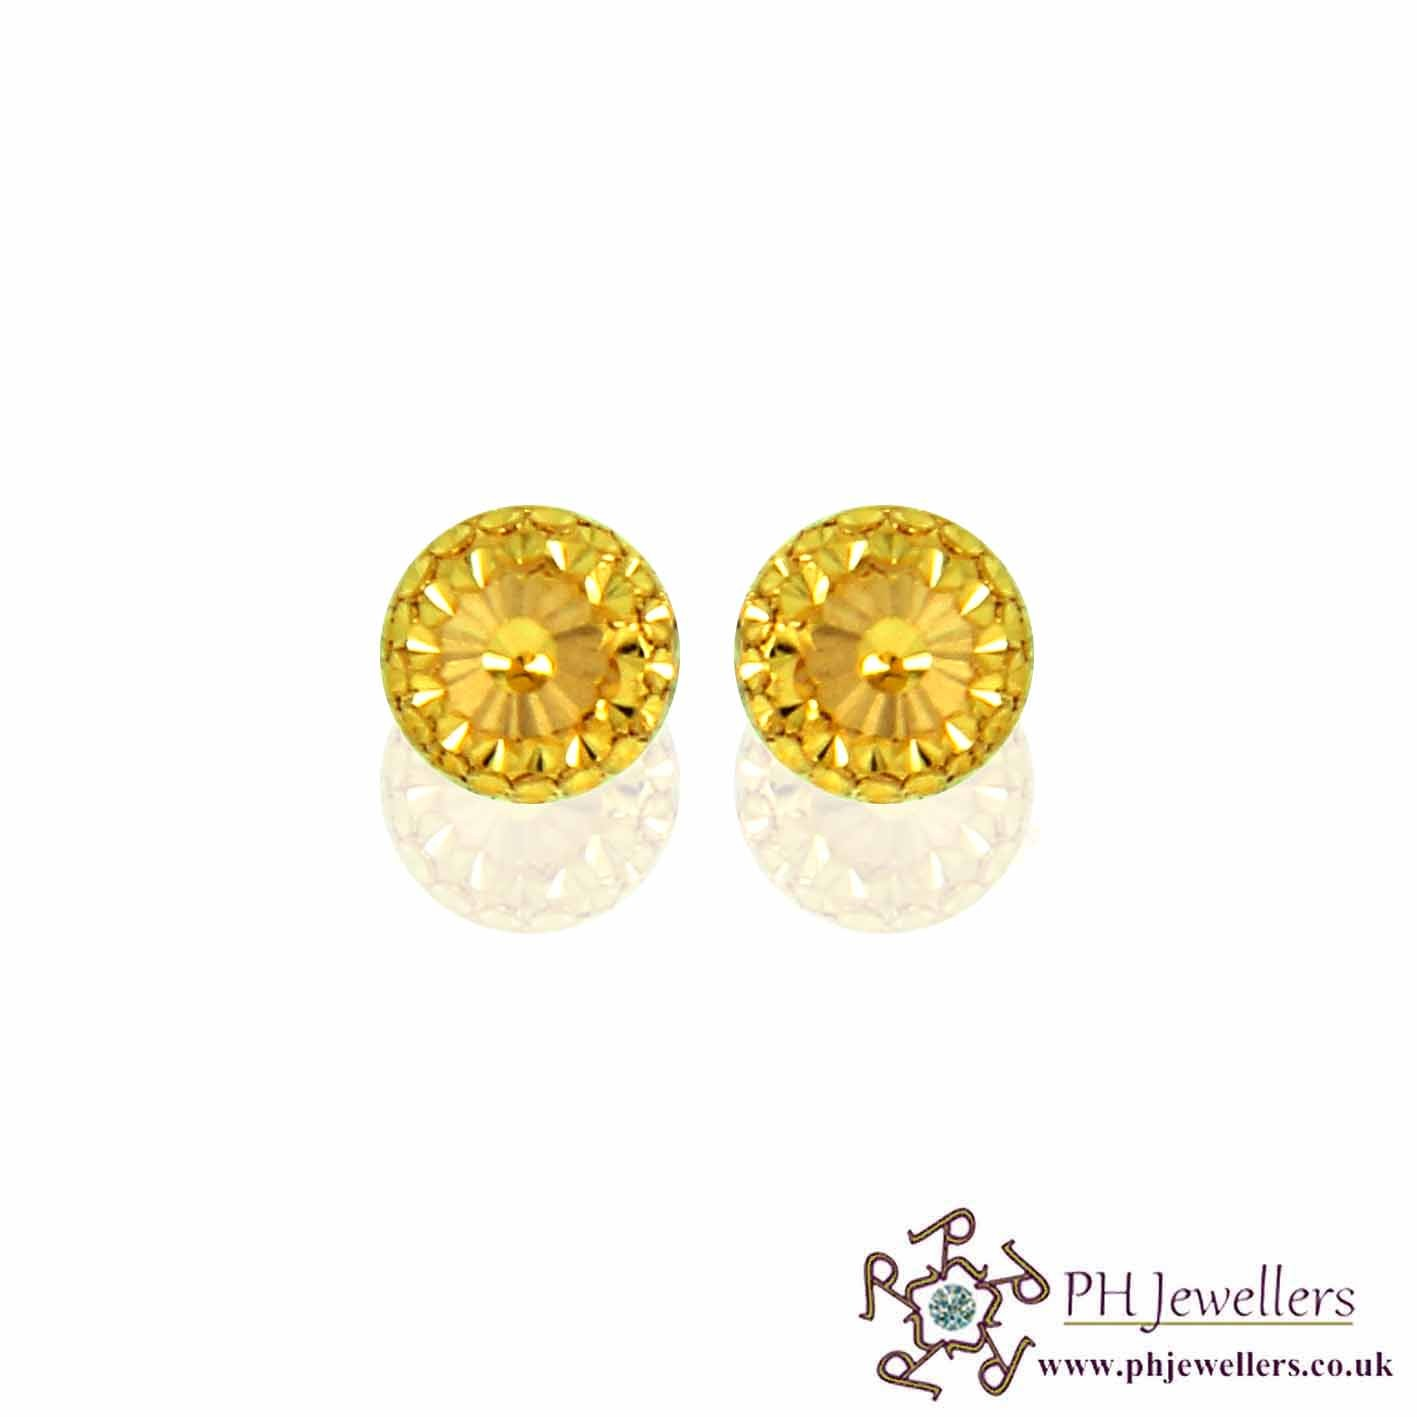 22ct 916 Yellow Gold Earring SE44